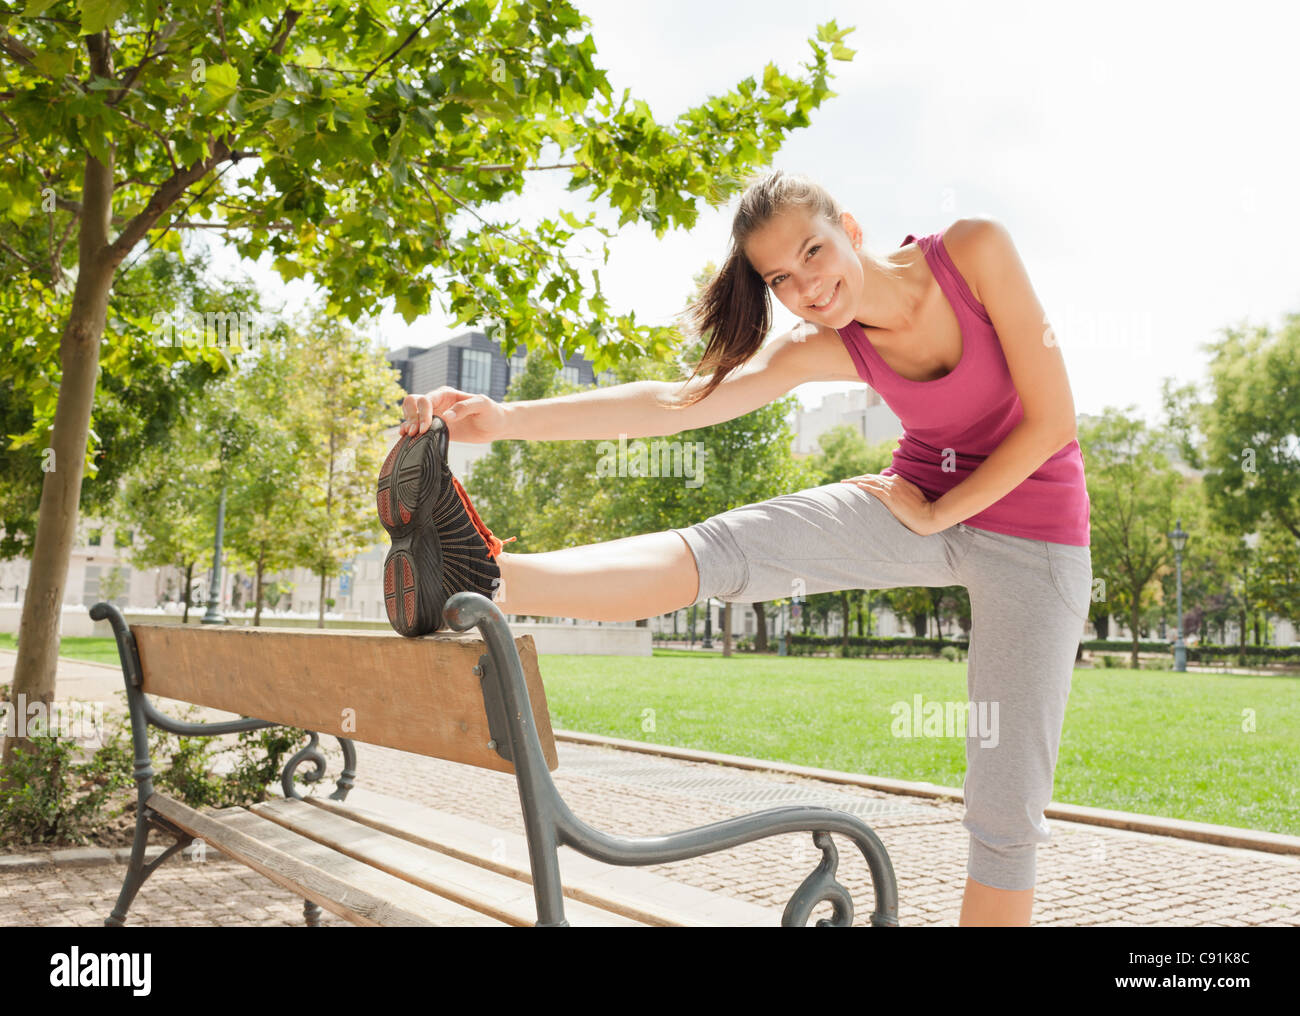 Runner stretching in park Photo Stock